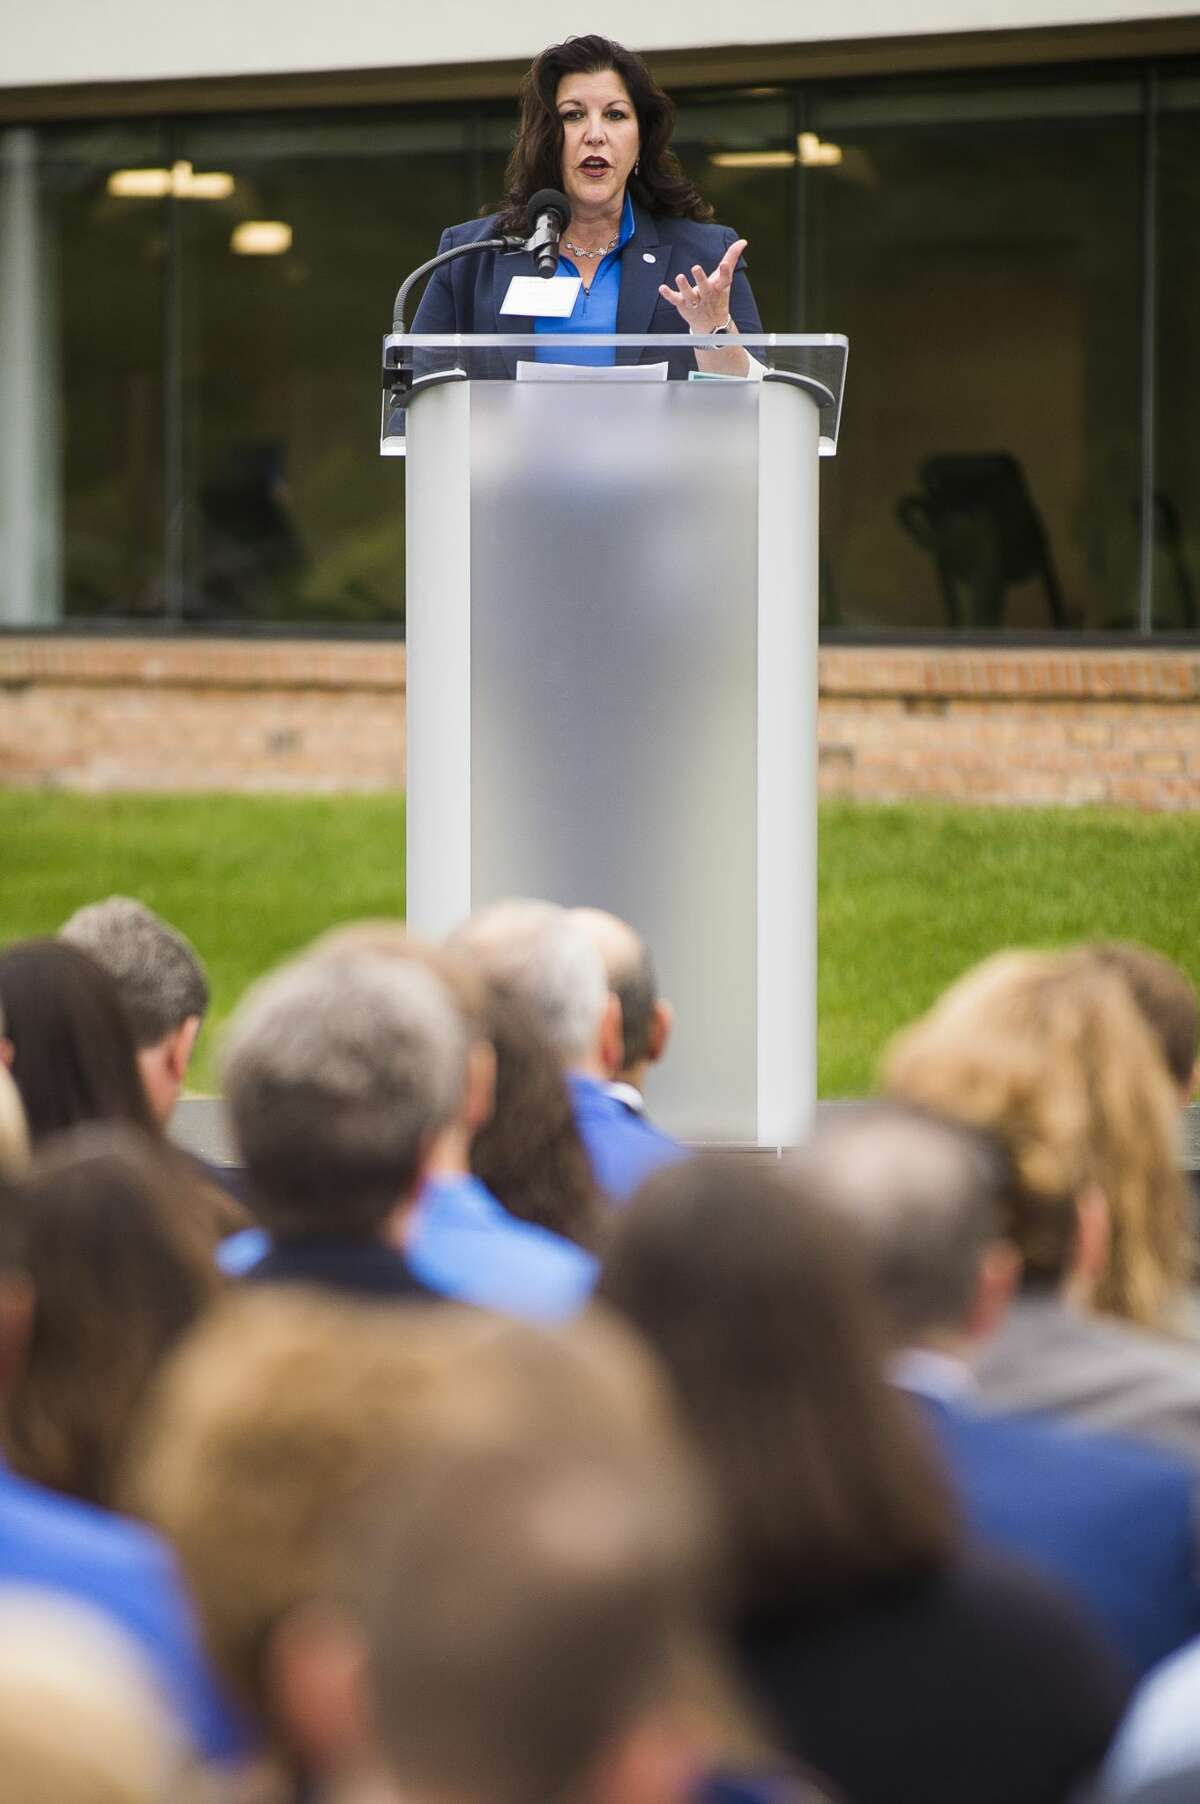 Guests listen as Susan Lewis, senior vice president of enterprise operations for Corteva Agriscience, speaks during an event celebrating the agriculture company on Monday, June 17, 2019 at 3100 James Savage Road in Midland. (Katy Kildee/kkildee@mdn.net)